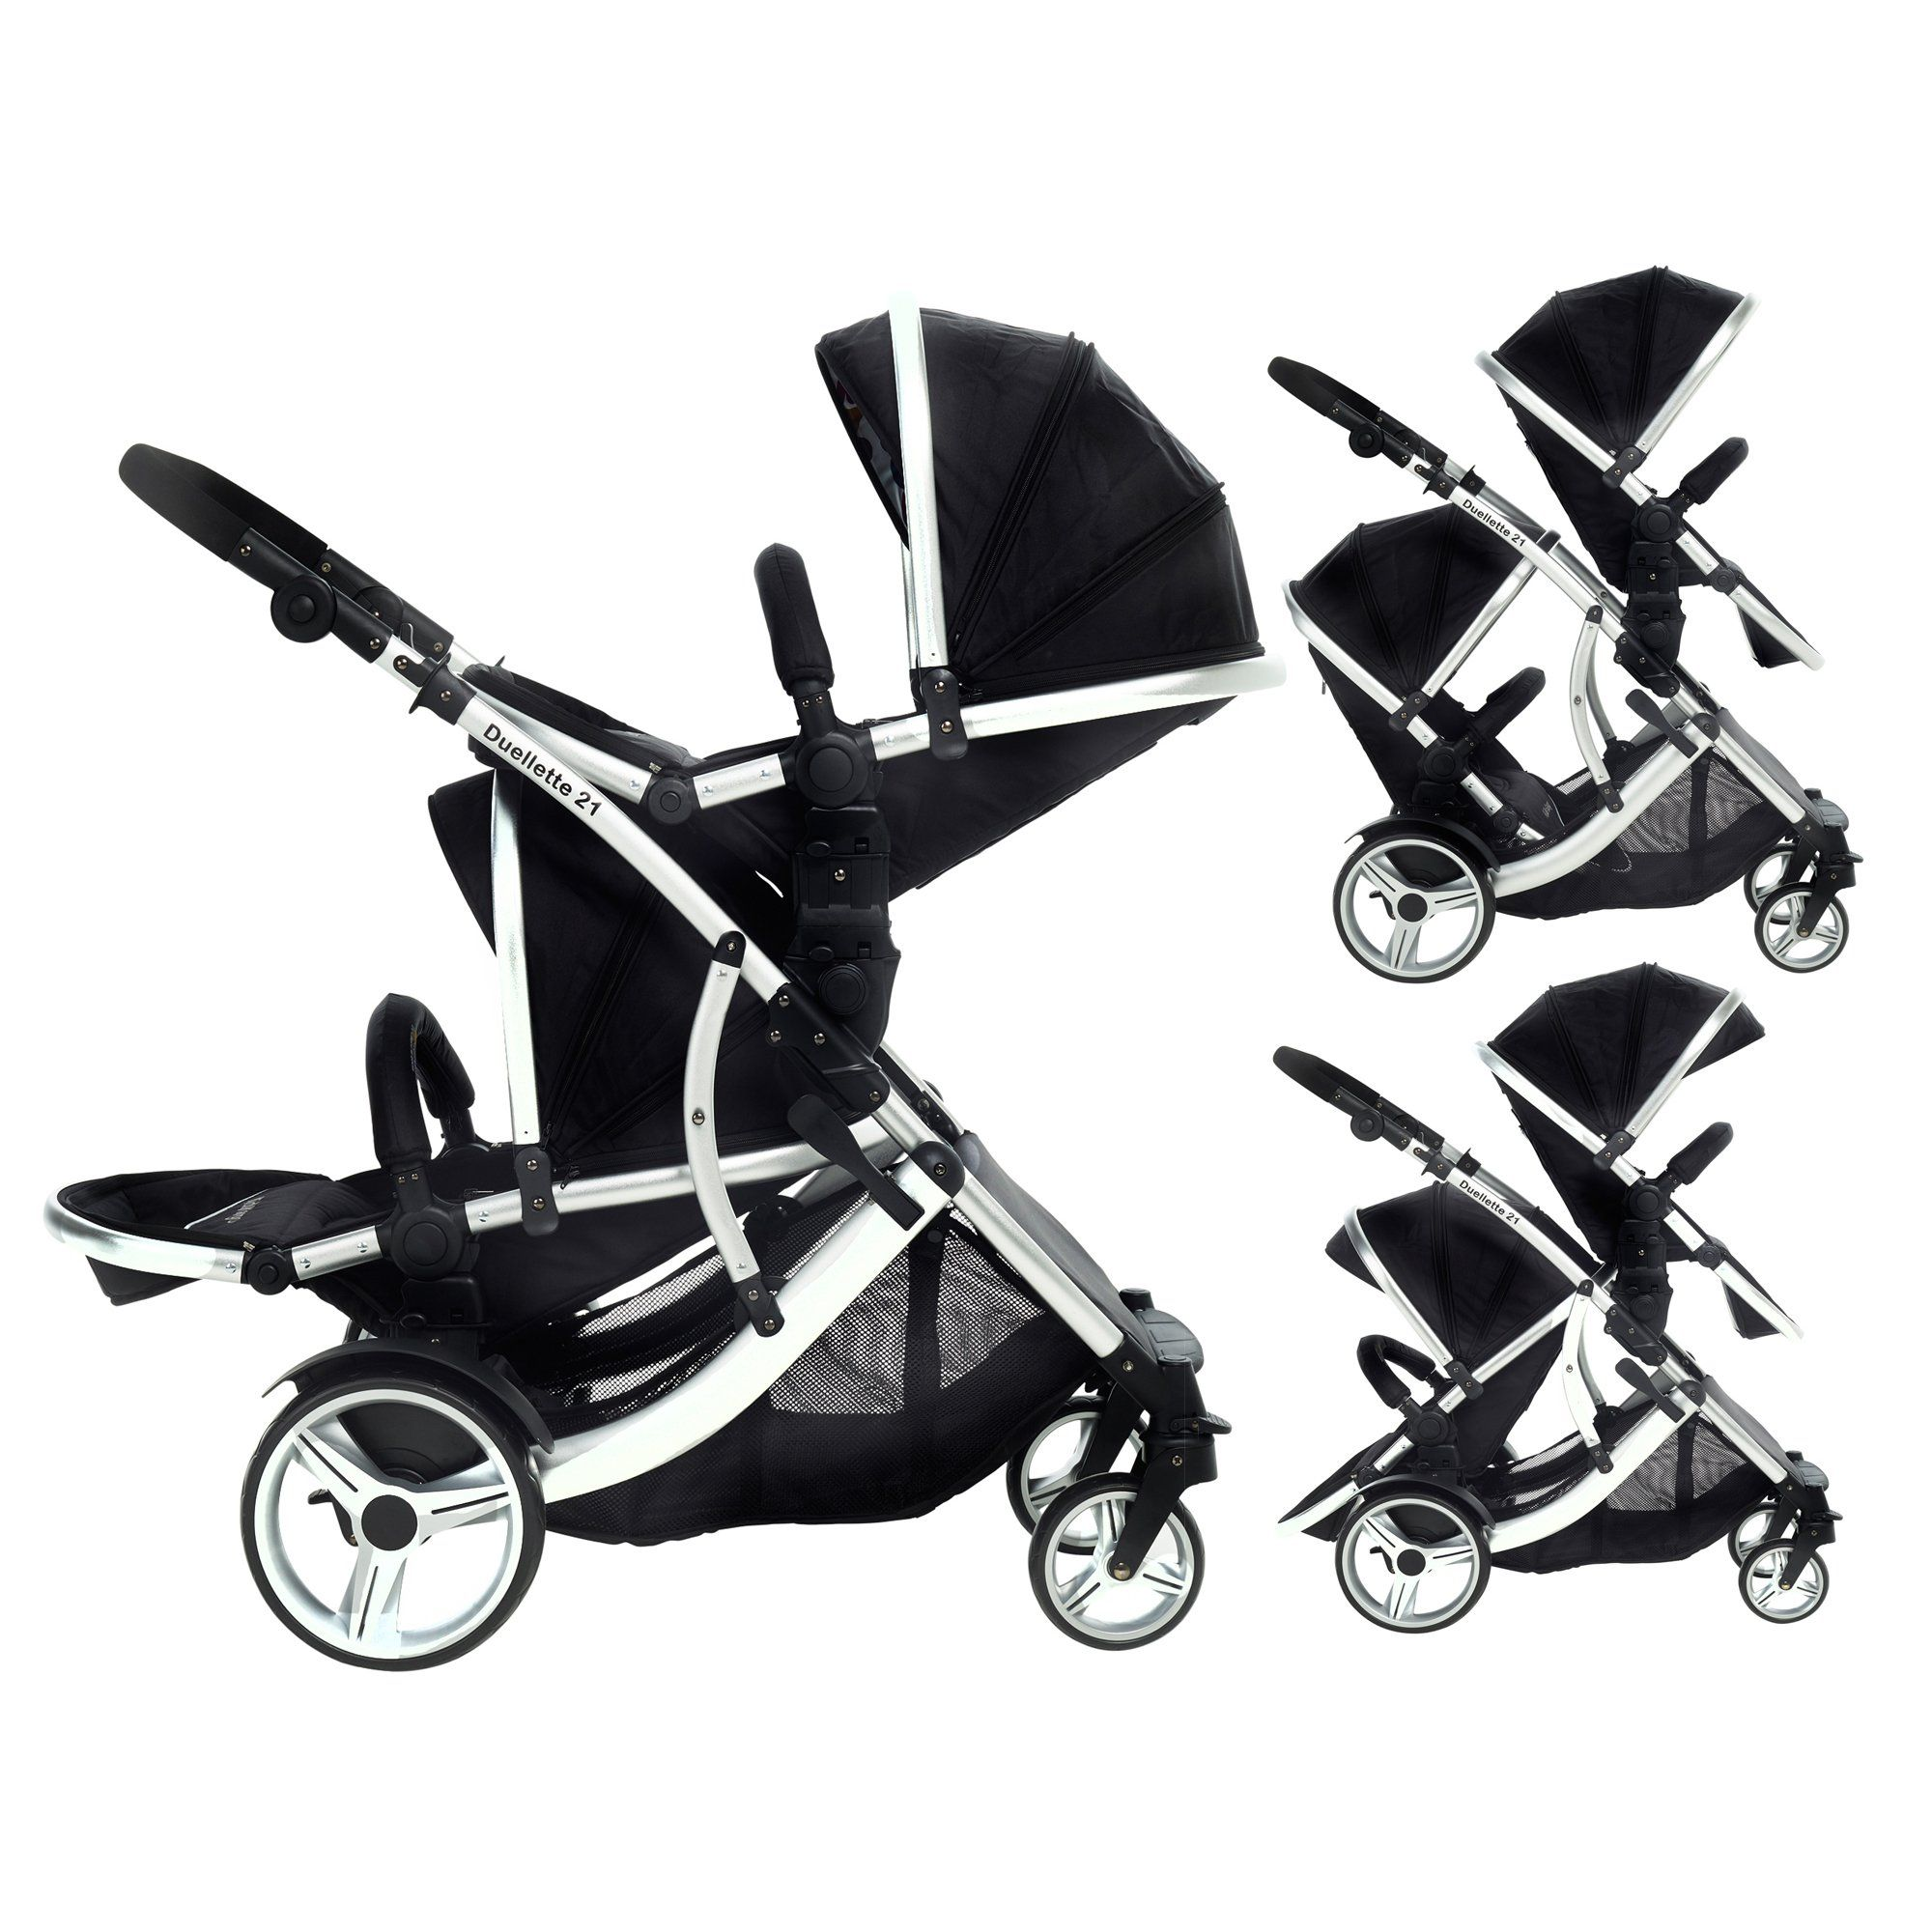 DUELLETTE BS Twin Double Pushchair Tandem Stroller buggy 2